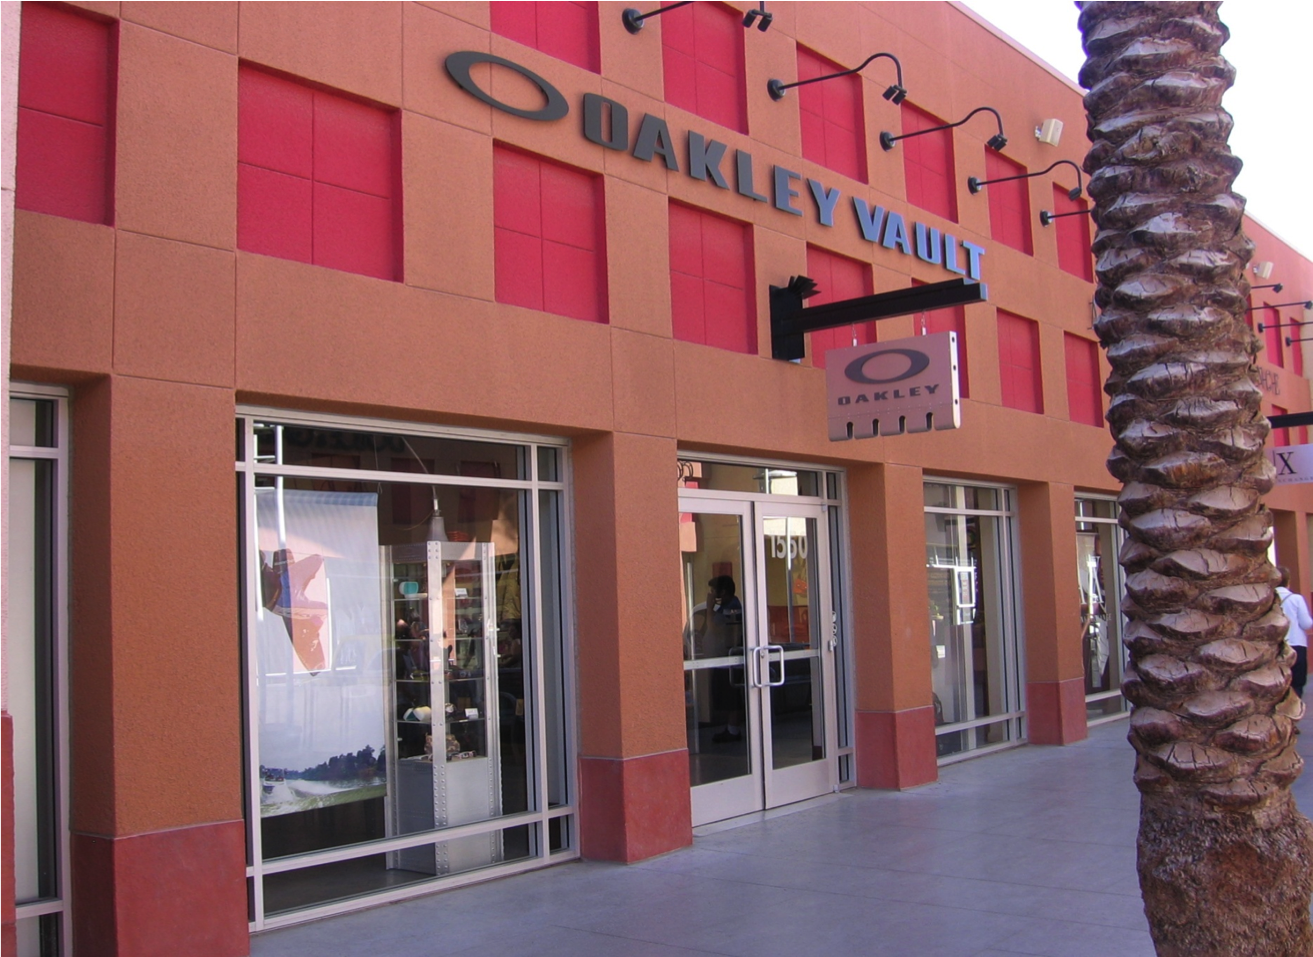 official oakley outlet  the official oakley outlet store: the oakley vault at las vegas premium outlets. shop oakley sunglasses, goggles, apparel, and more up to 50% off at oakley